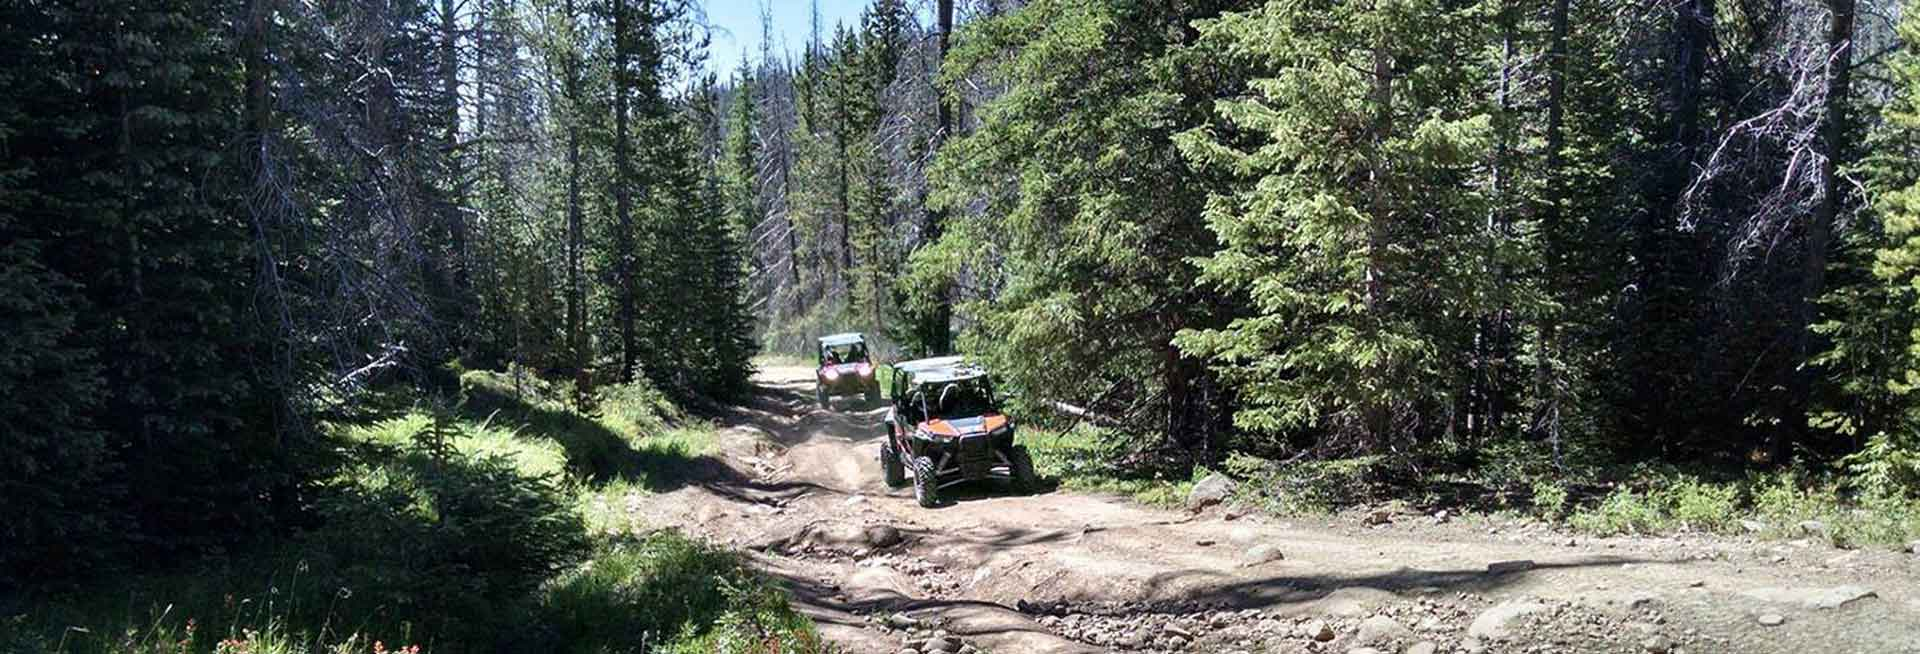 ATVs on a forest trail.